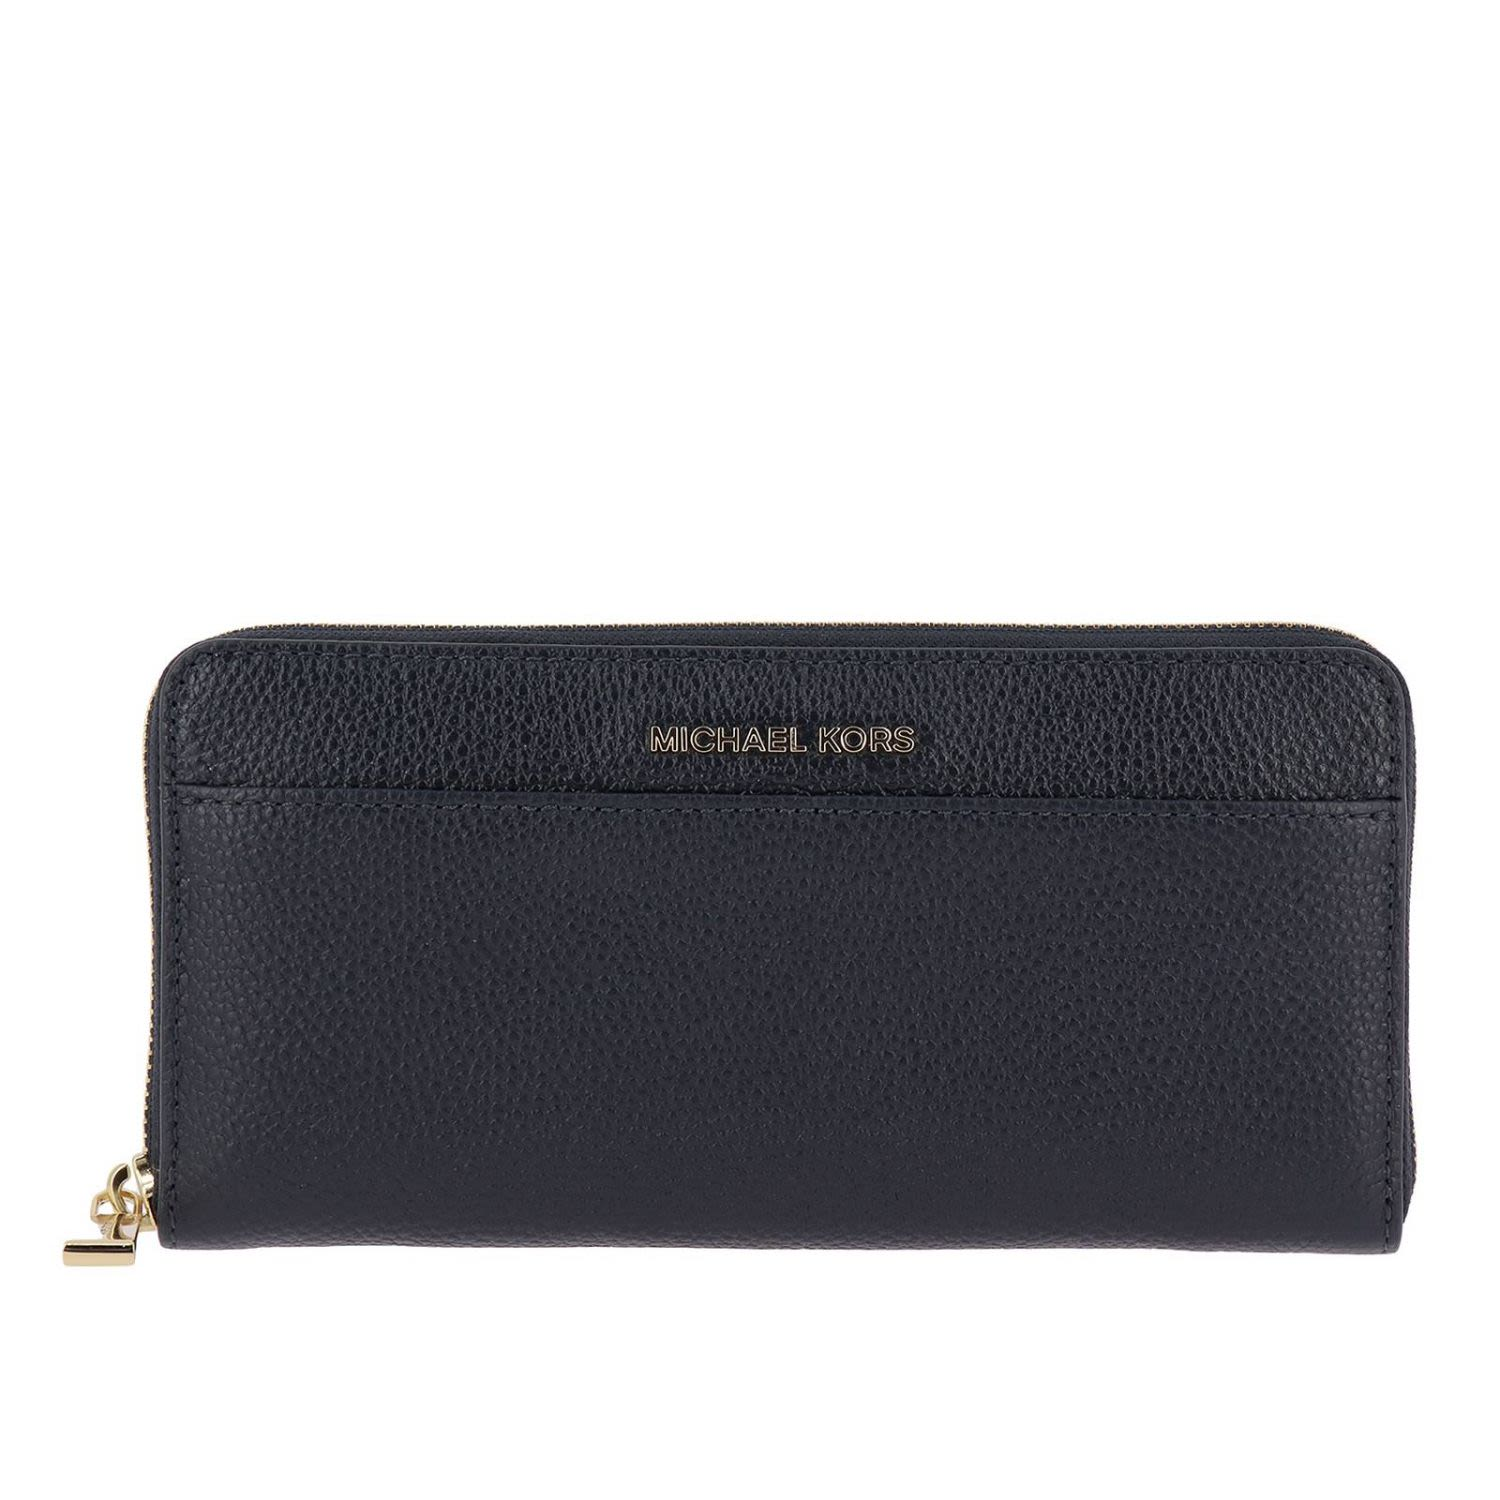 Michael Michael Kors Wallet Wallet Women Michael Michael Kors in Blue